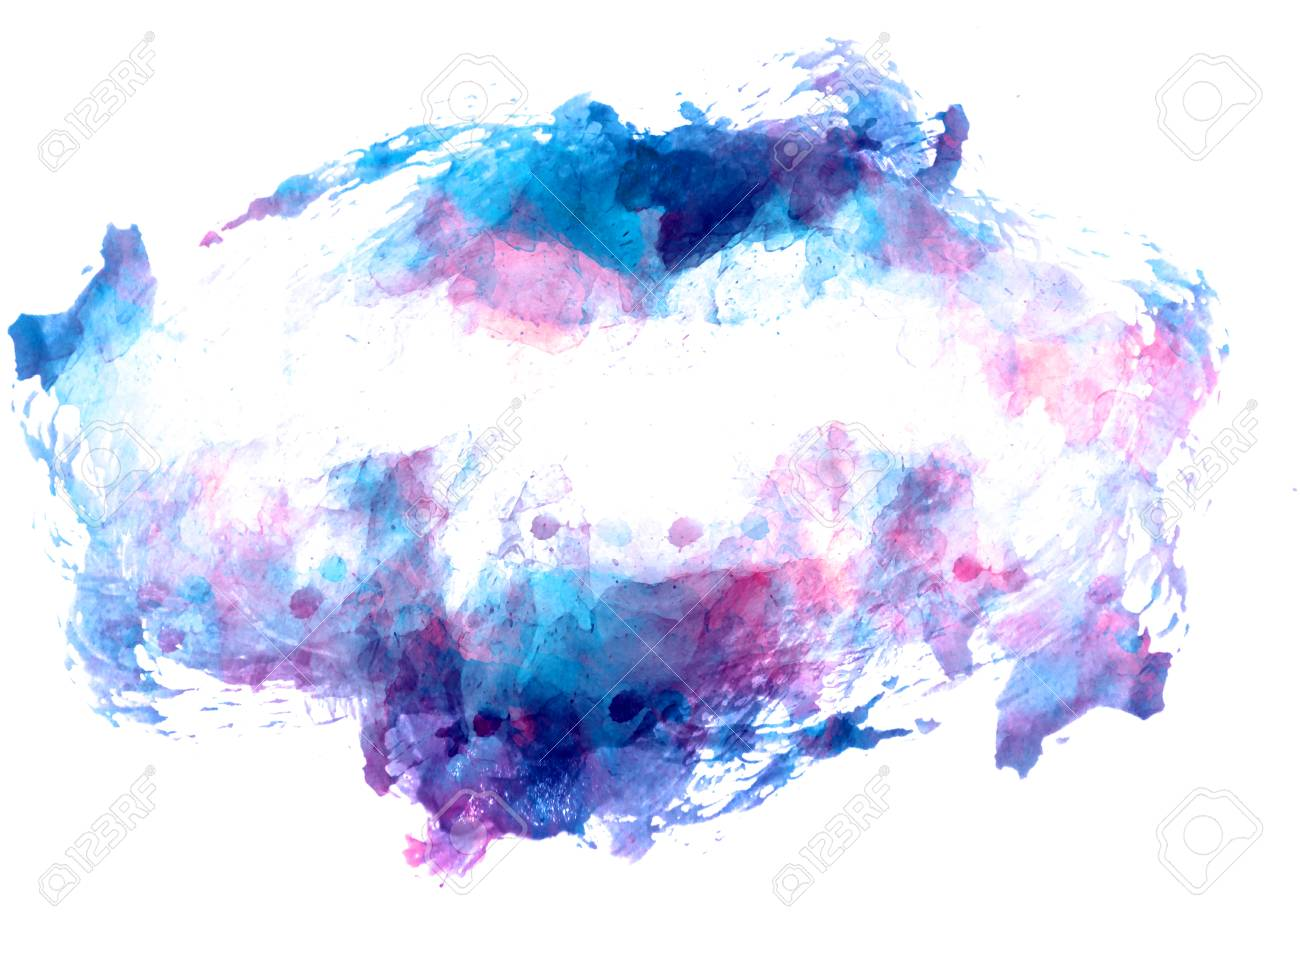 Abstract Beautiful Colorful Watercolor Illustration Painting Stock Photo Picture And Royalty Free Image Image 116125552